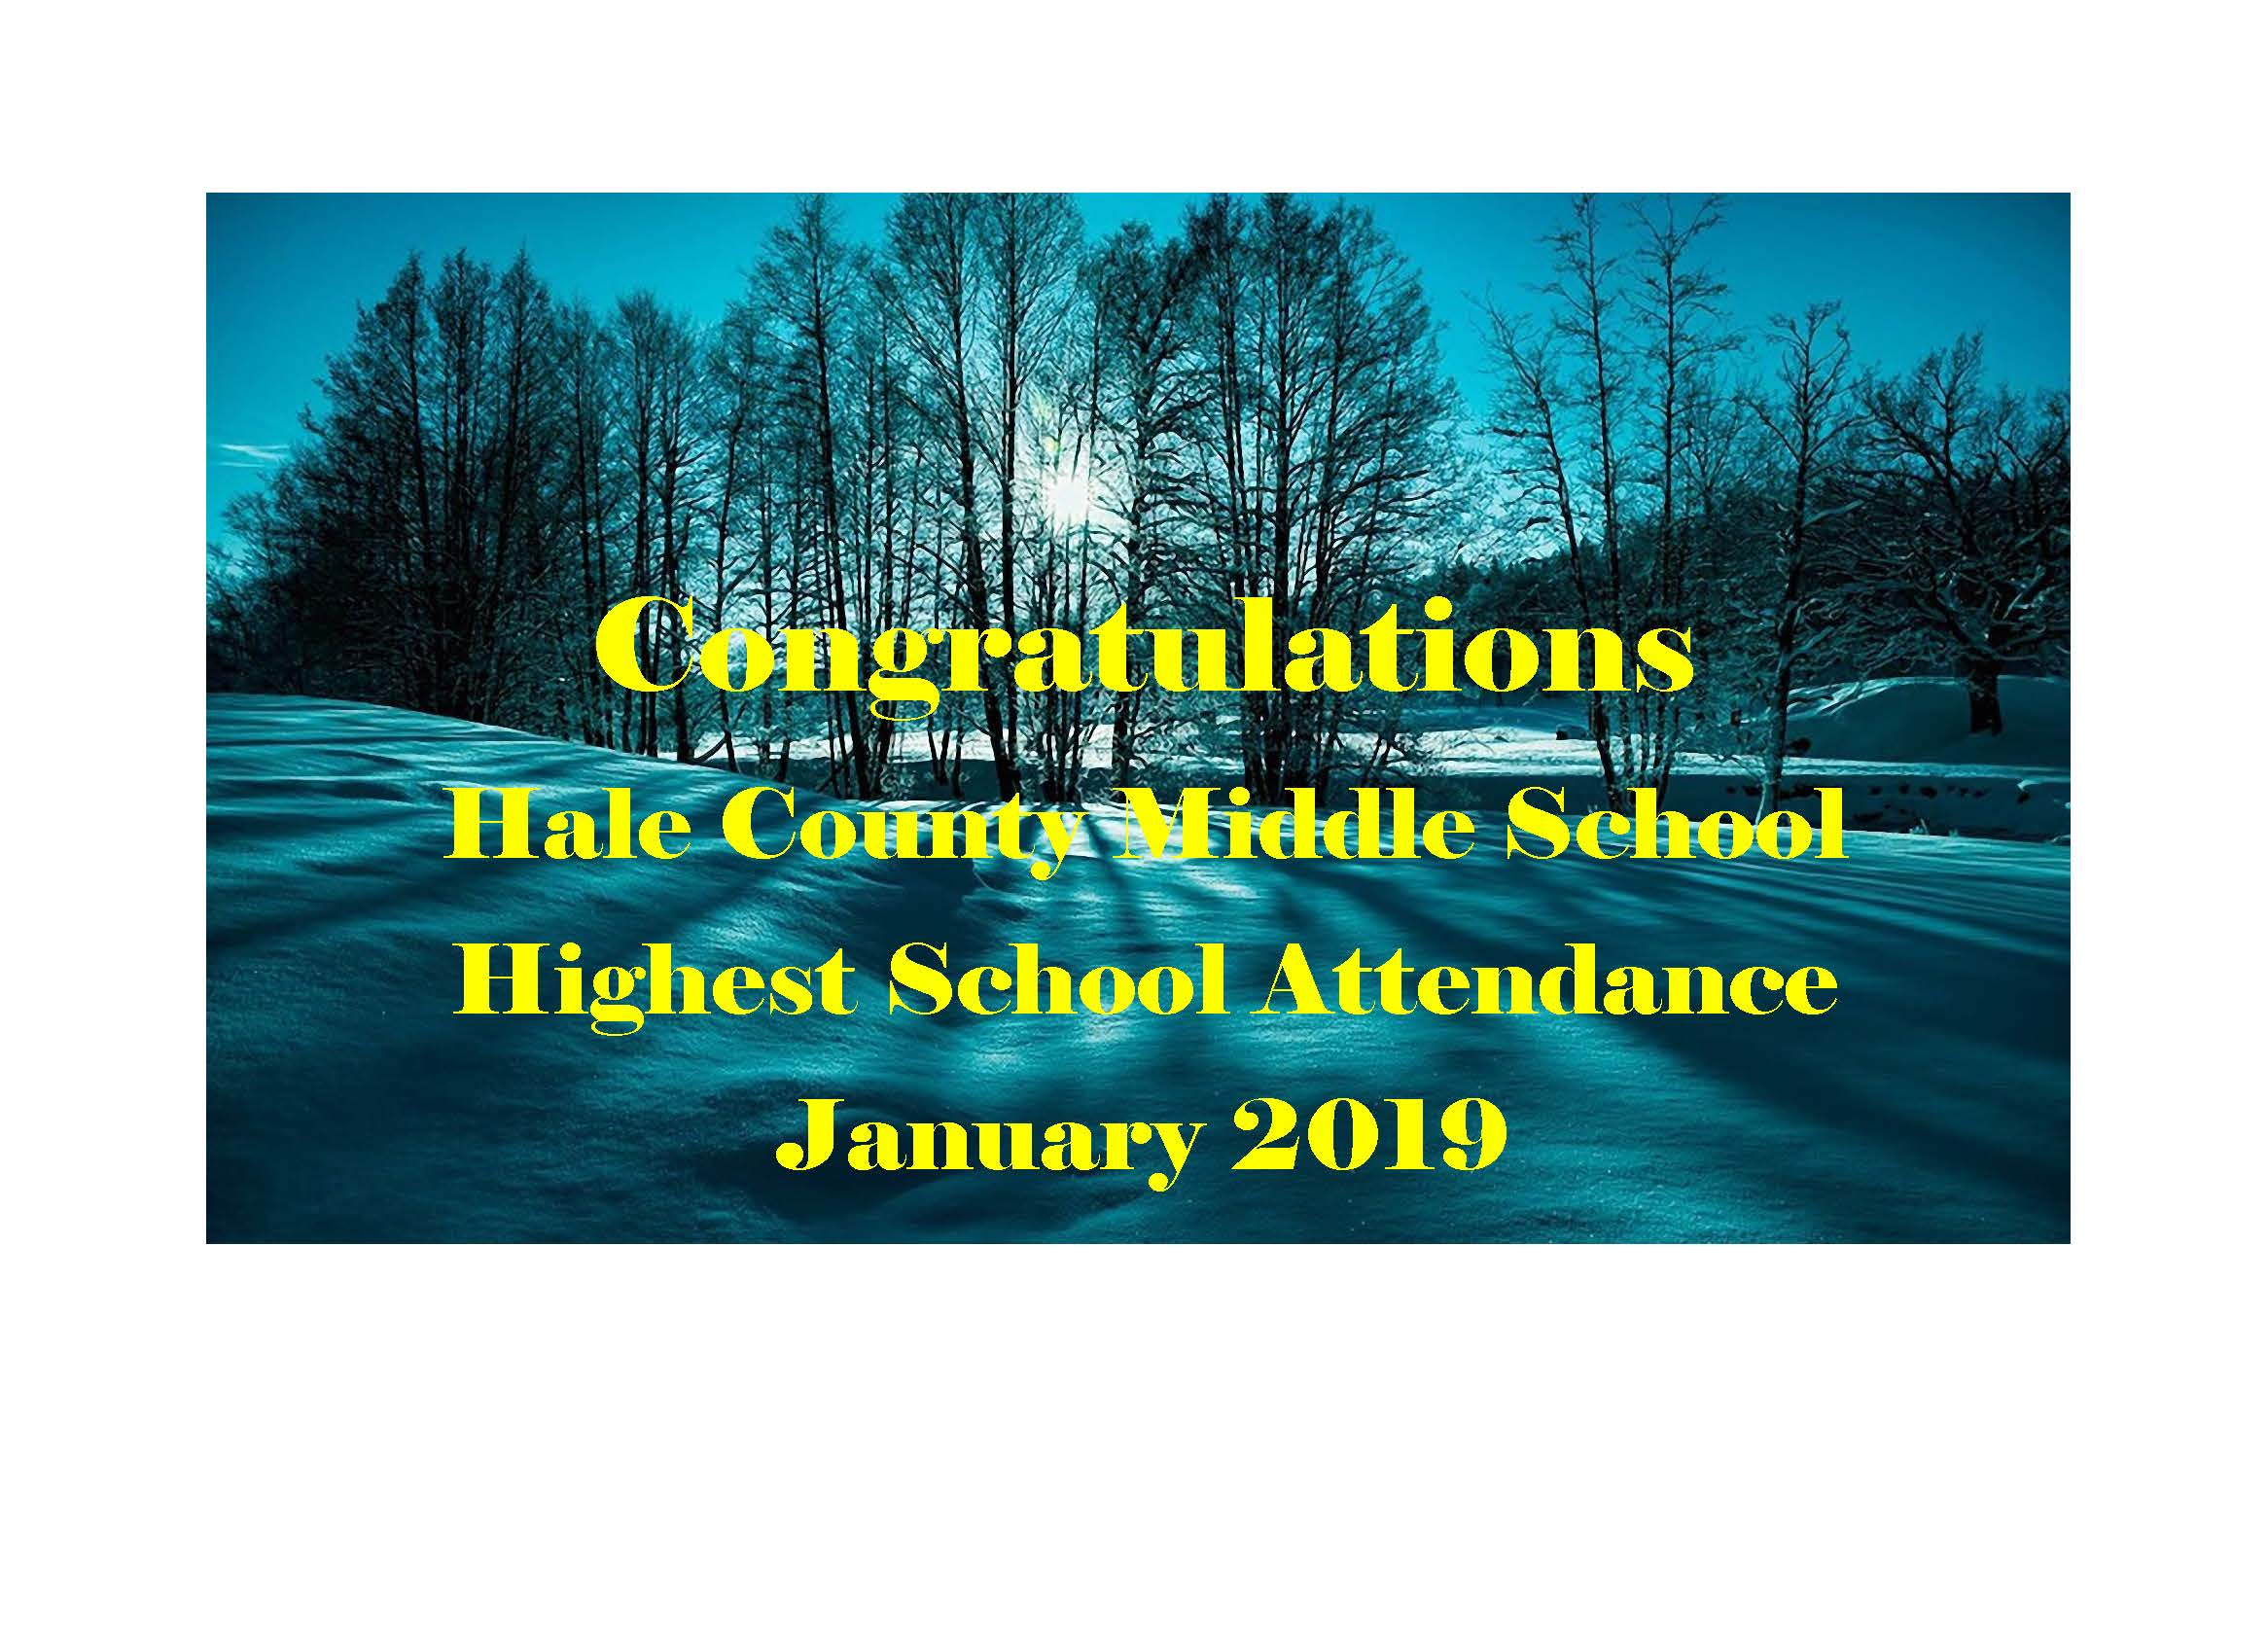 congratulations hale county middle school highest school attendance january 2019